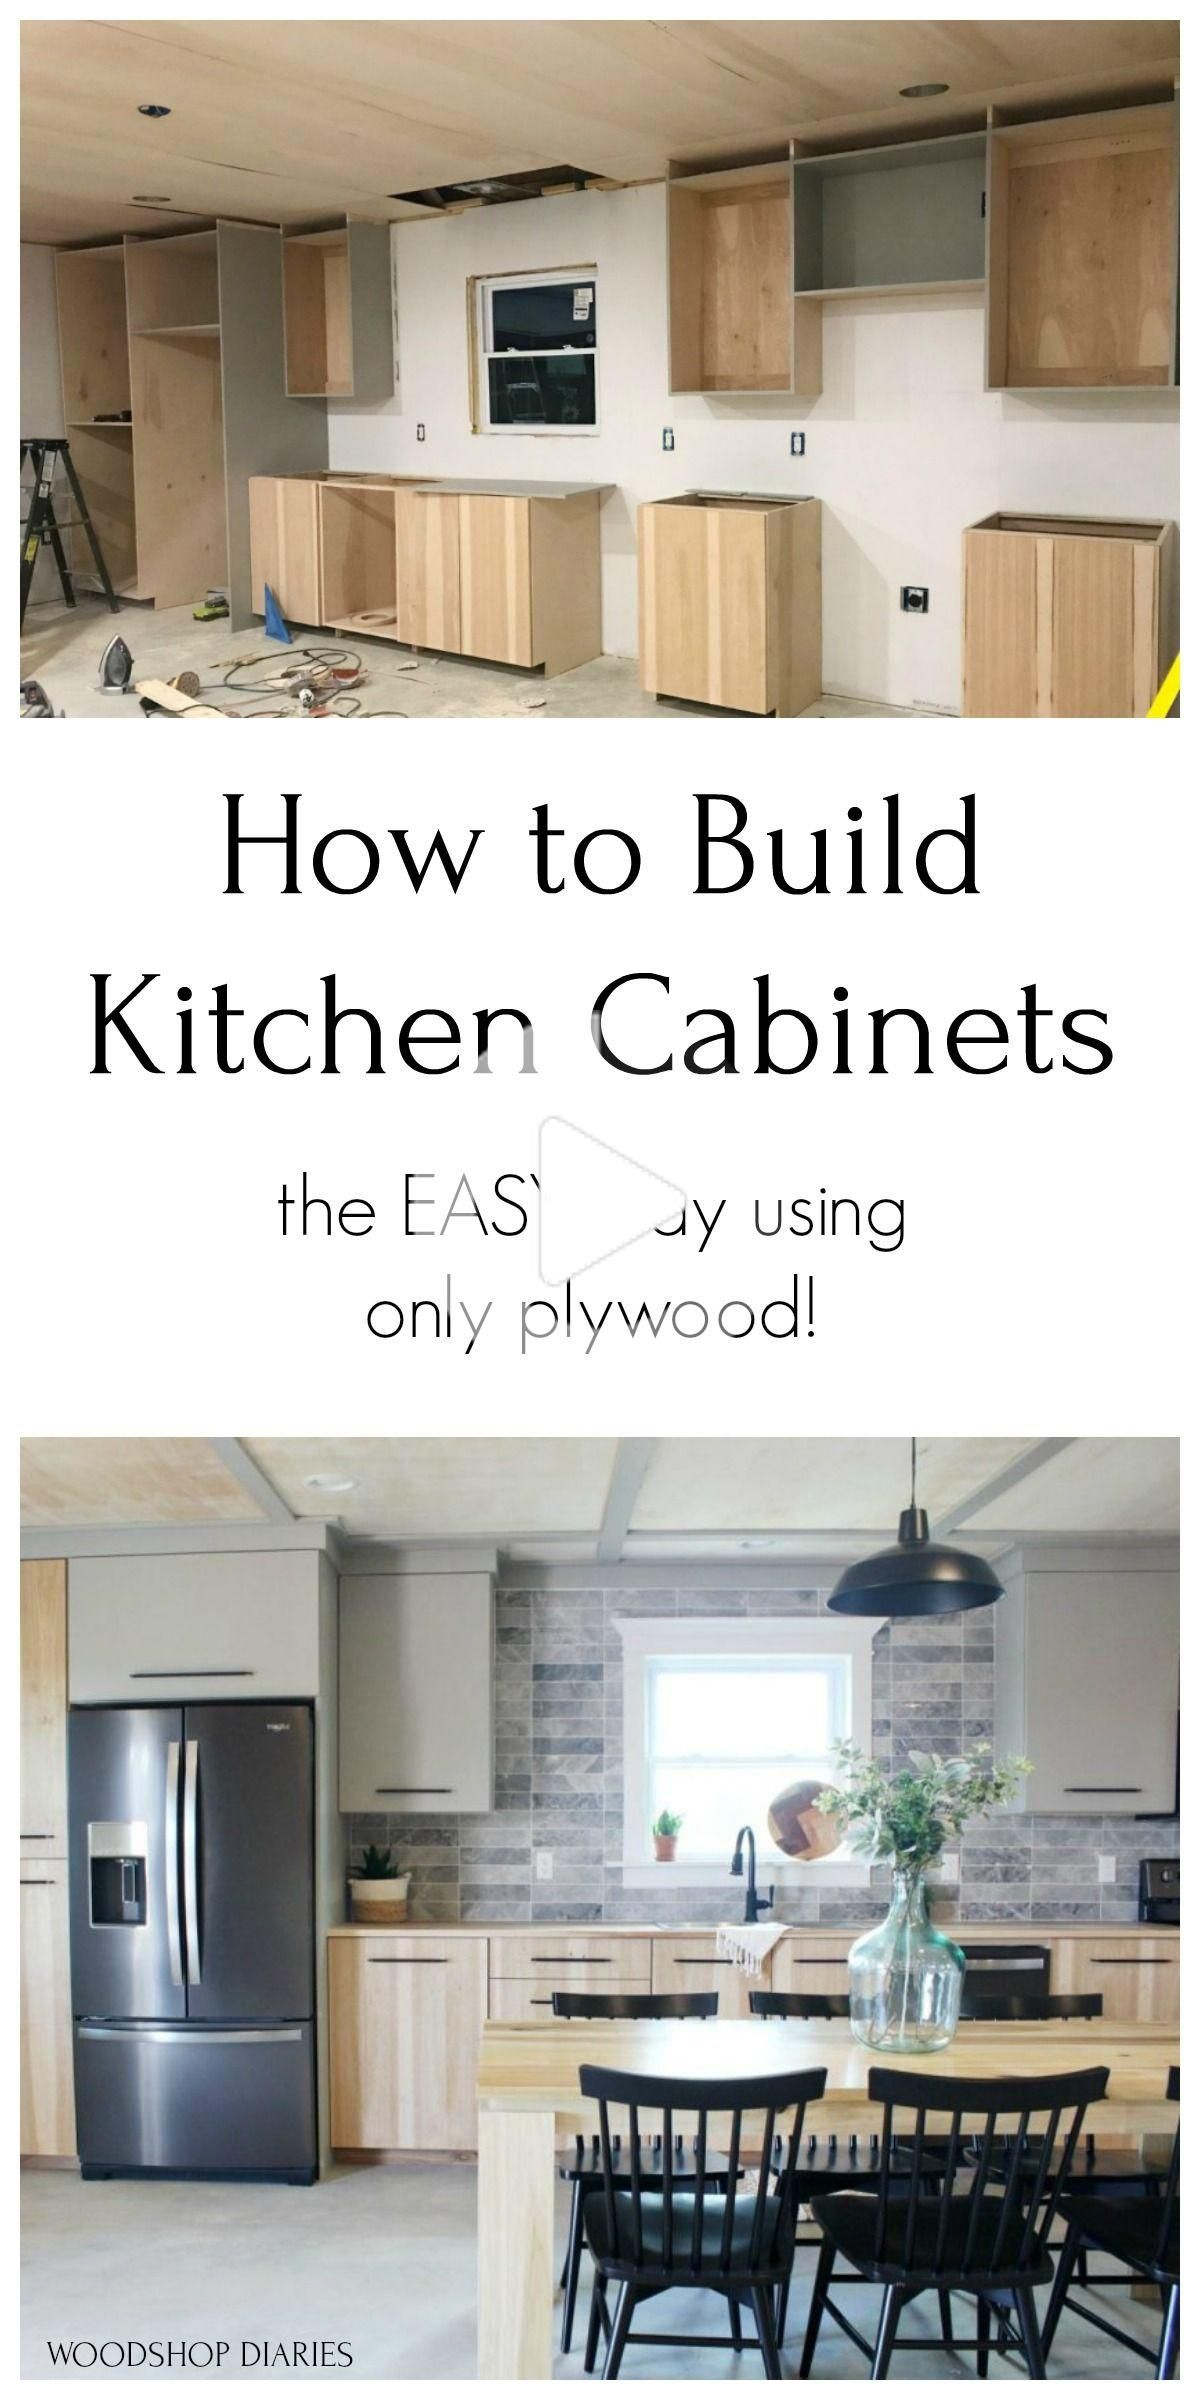 Diy Kitchen Cabinets Made From Only Plywood In 2020 Building Kitchen Cabinets Kitchen Cabinets On A Budget Kitchen Design Diy